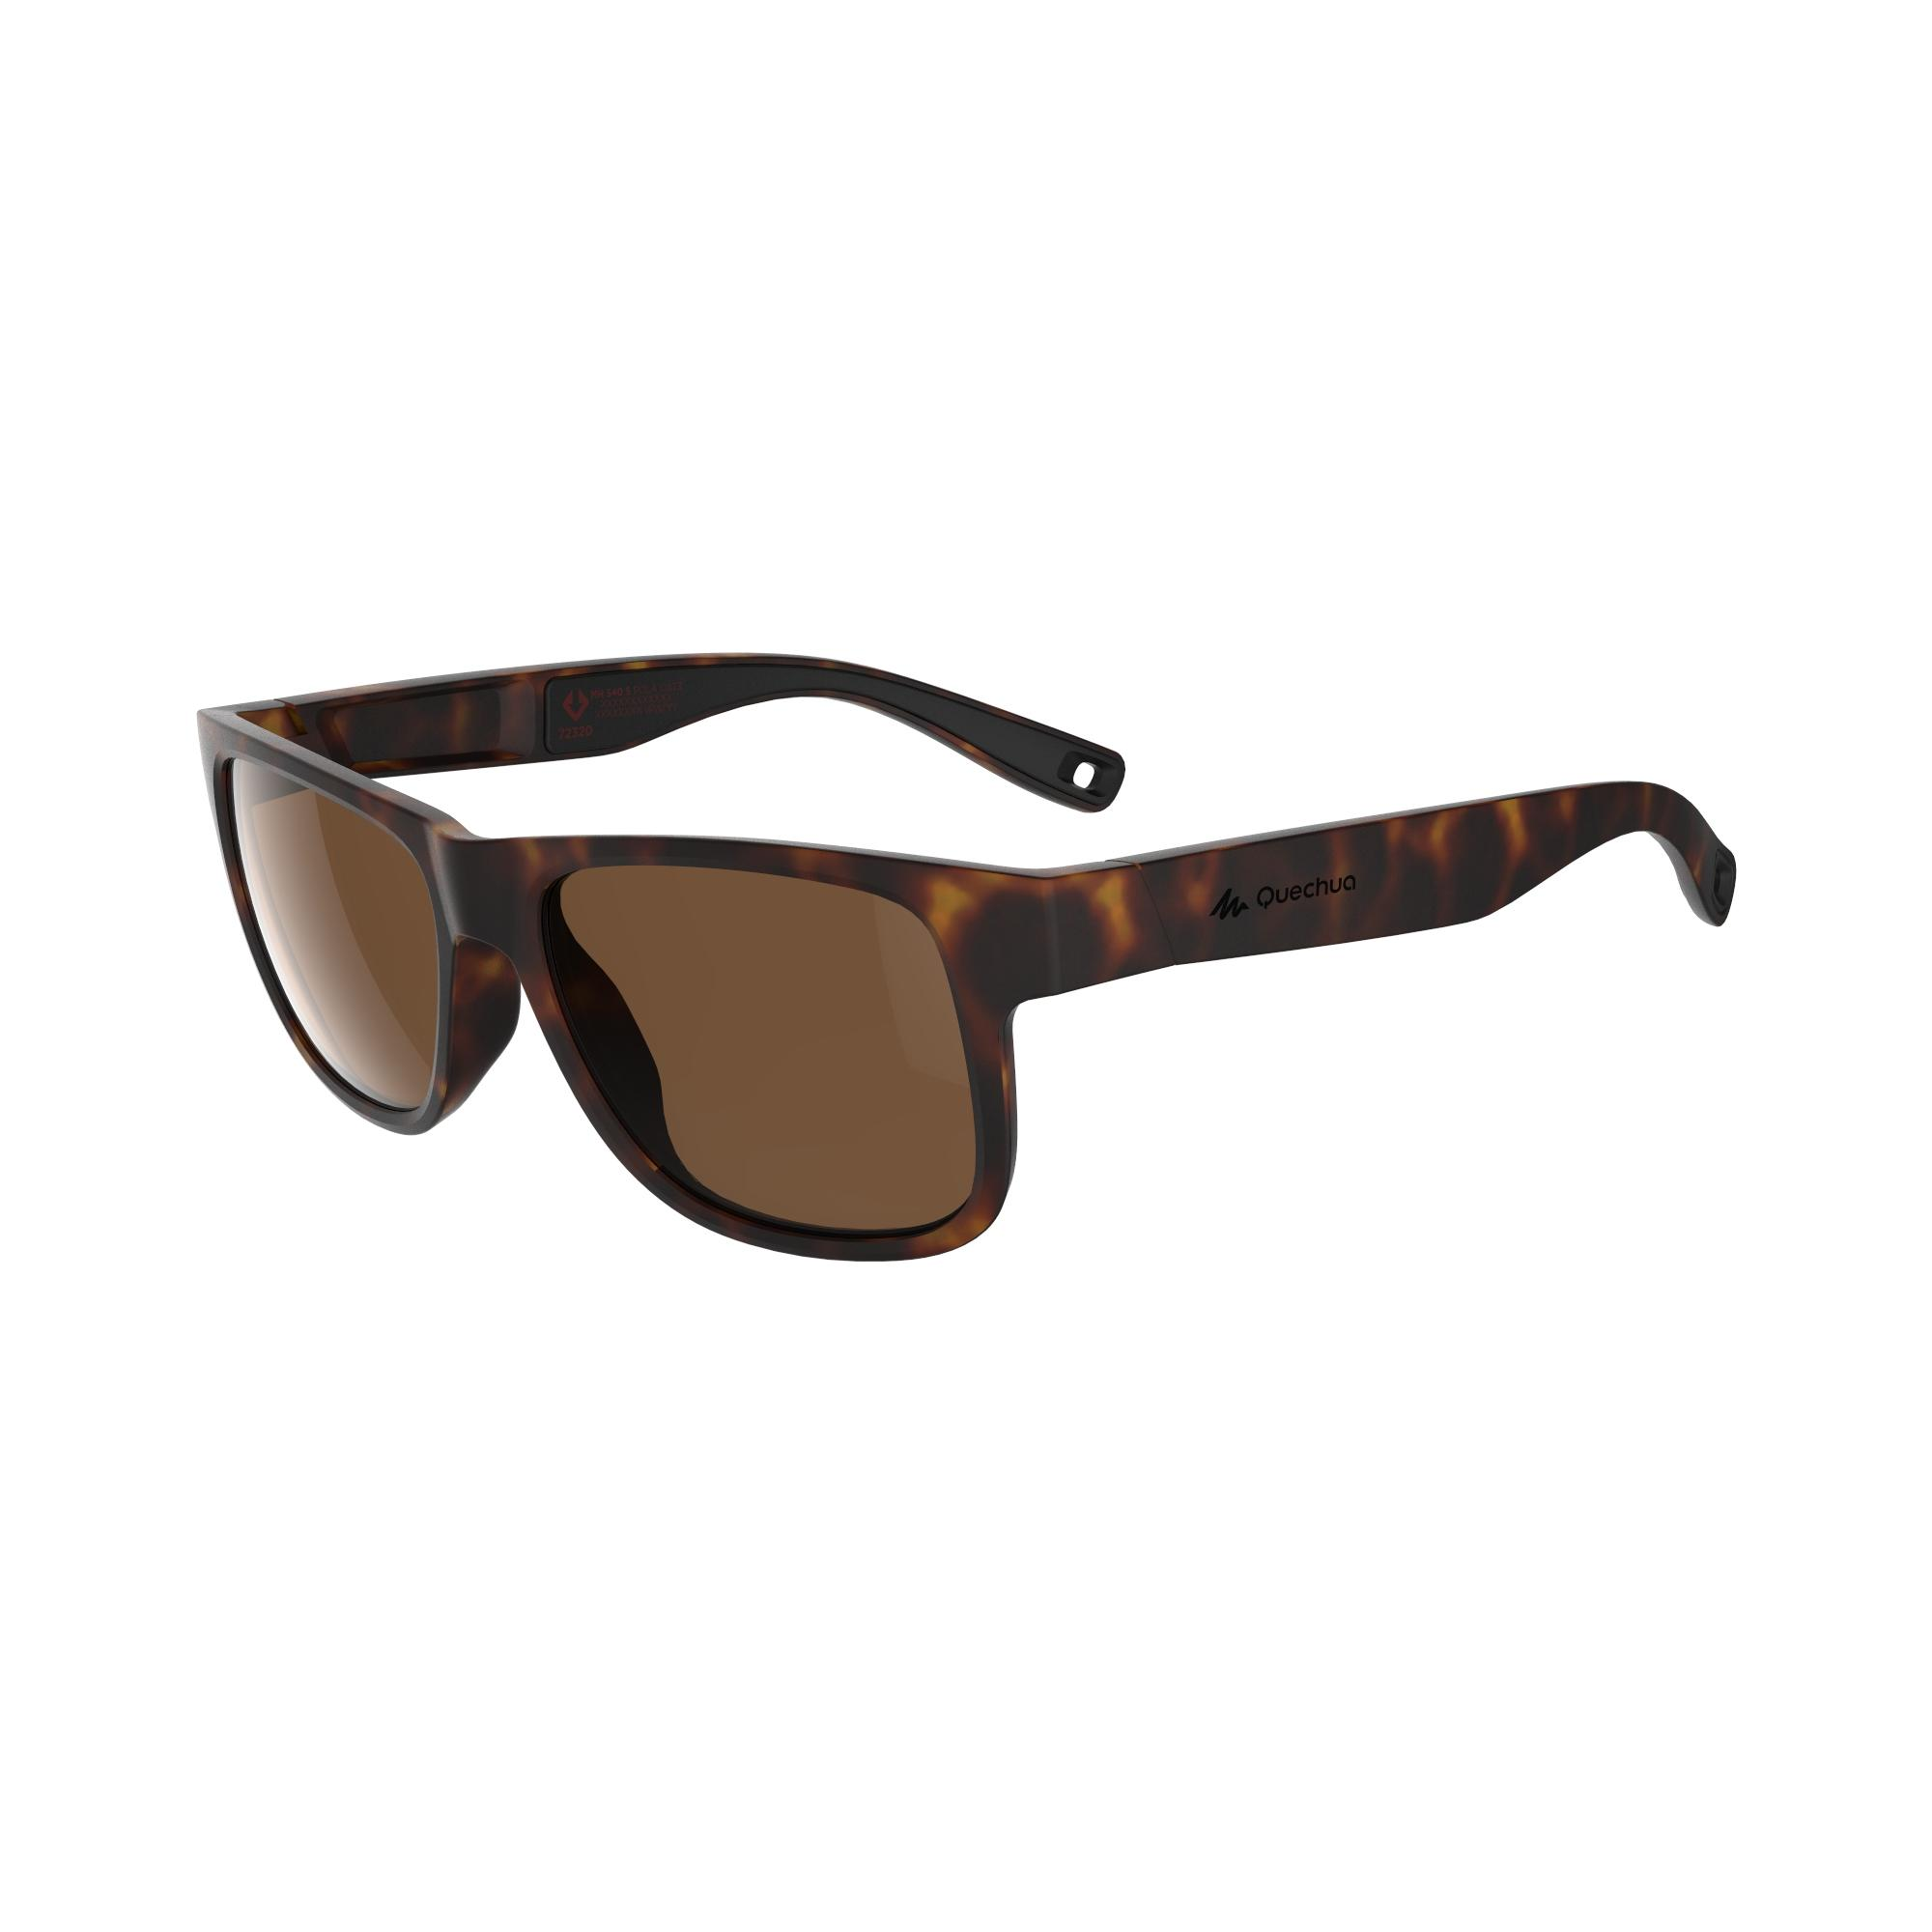 MH 540 Category 3 Polarising Hiking Sunglasses - Small - Brown